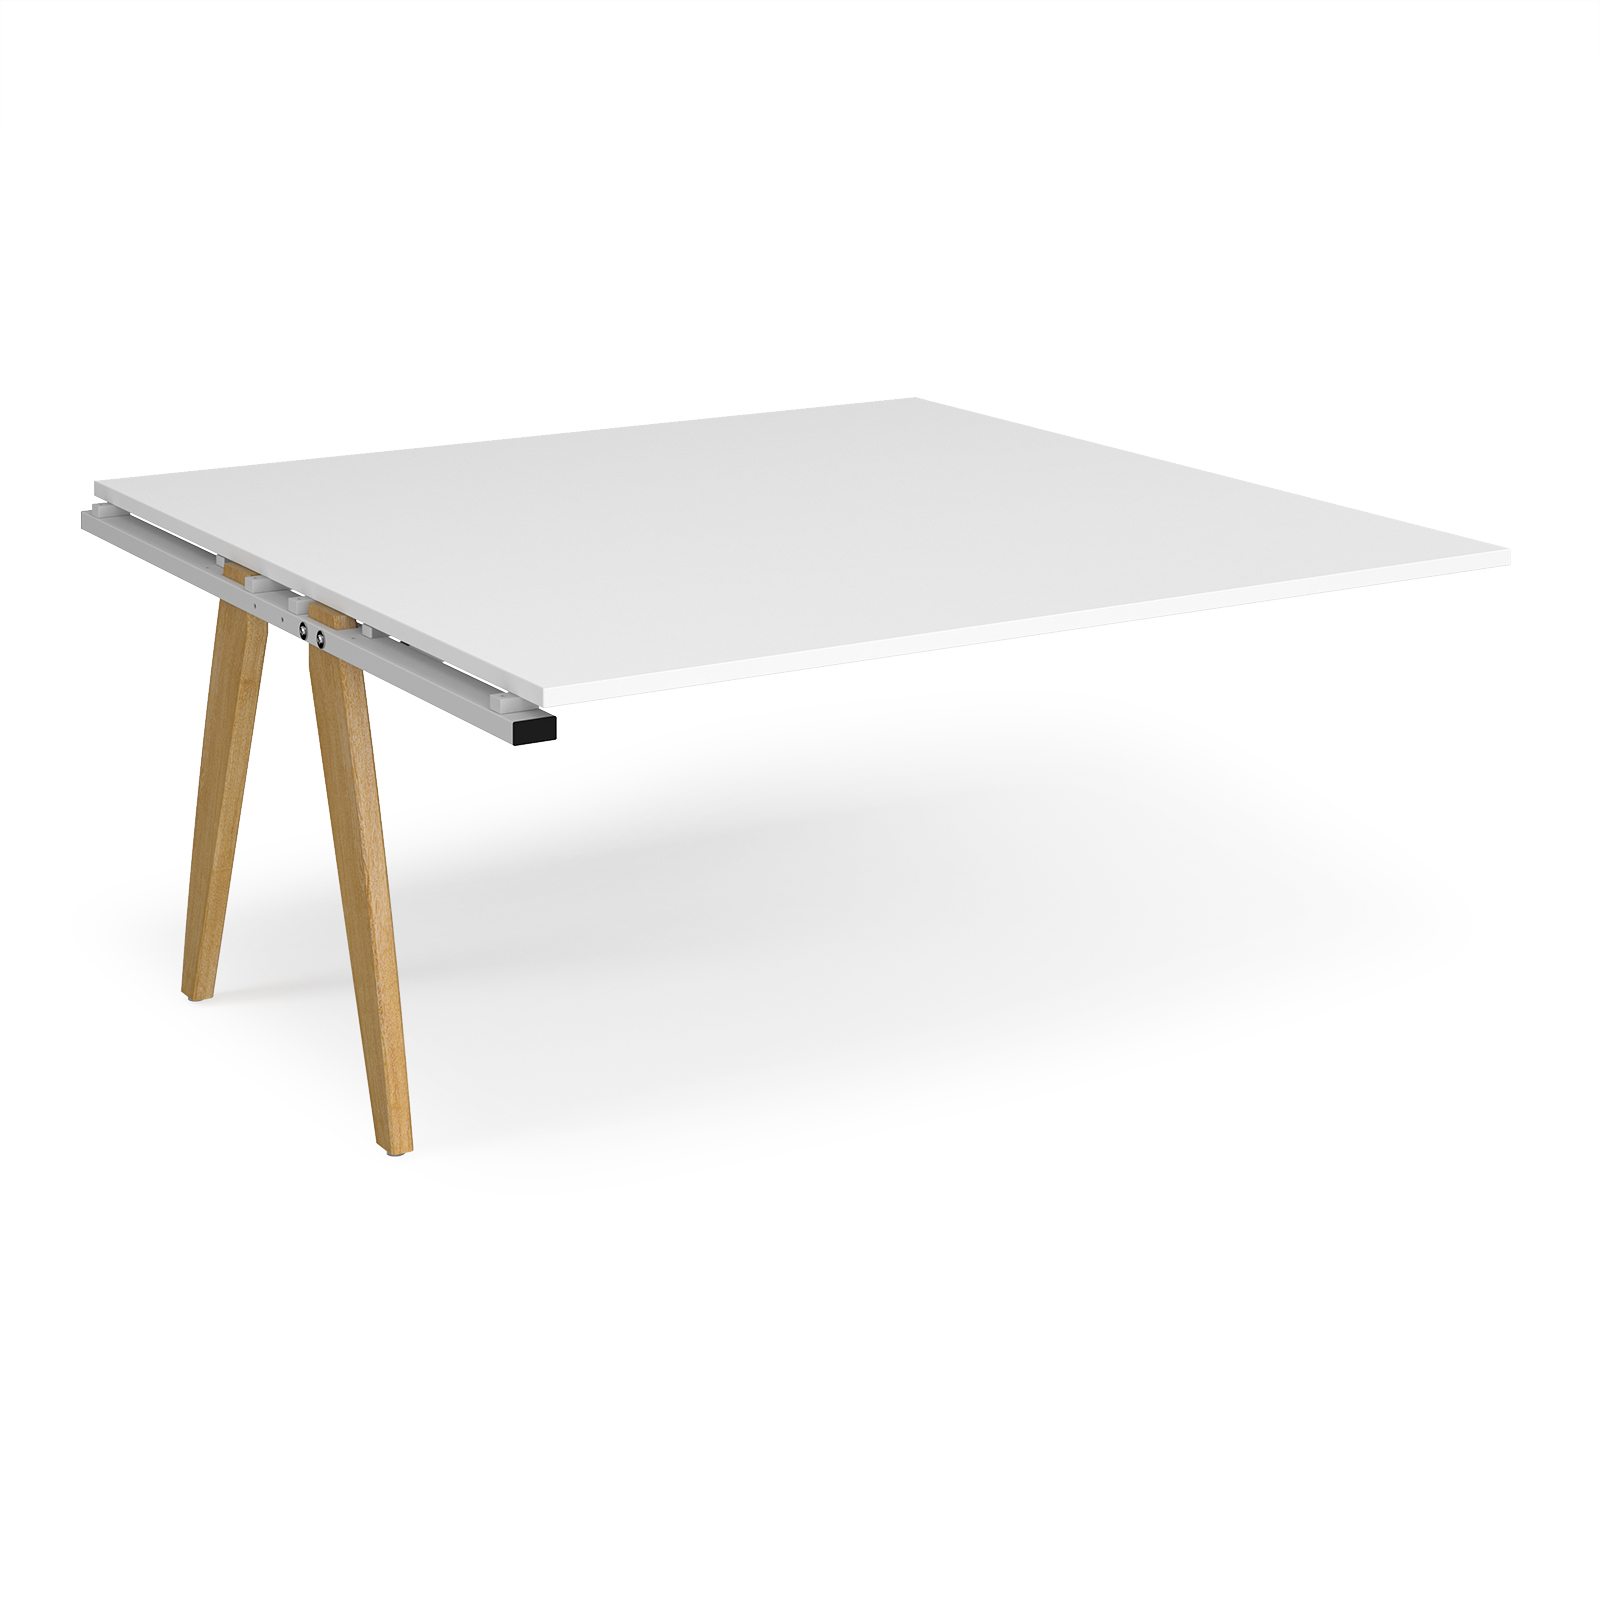 Fuze boardroom table add on unit 1600mm x 1600mm - white frame, white top